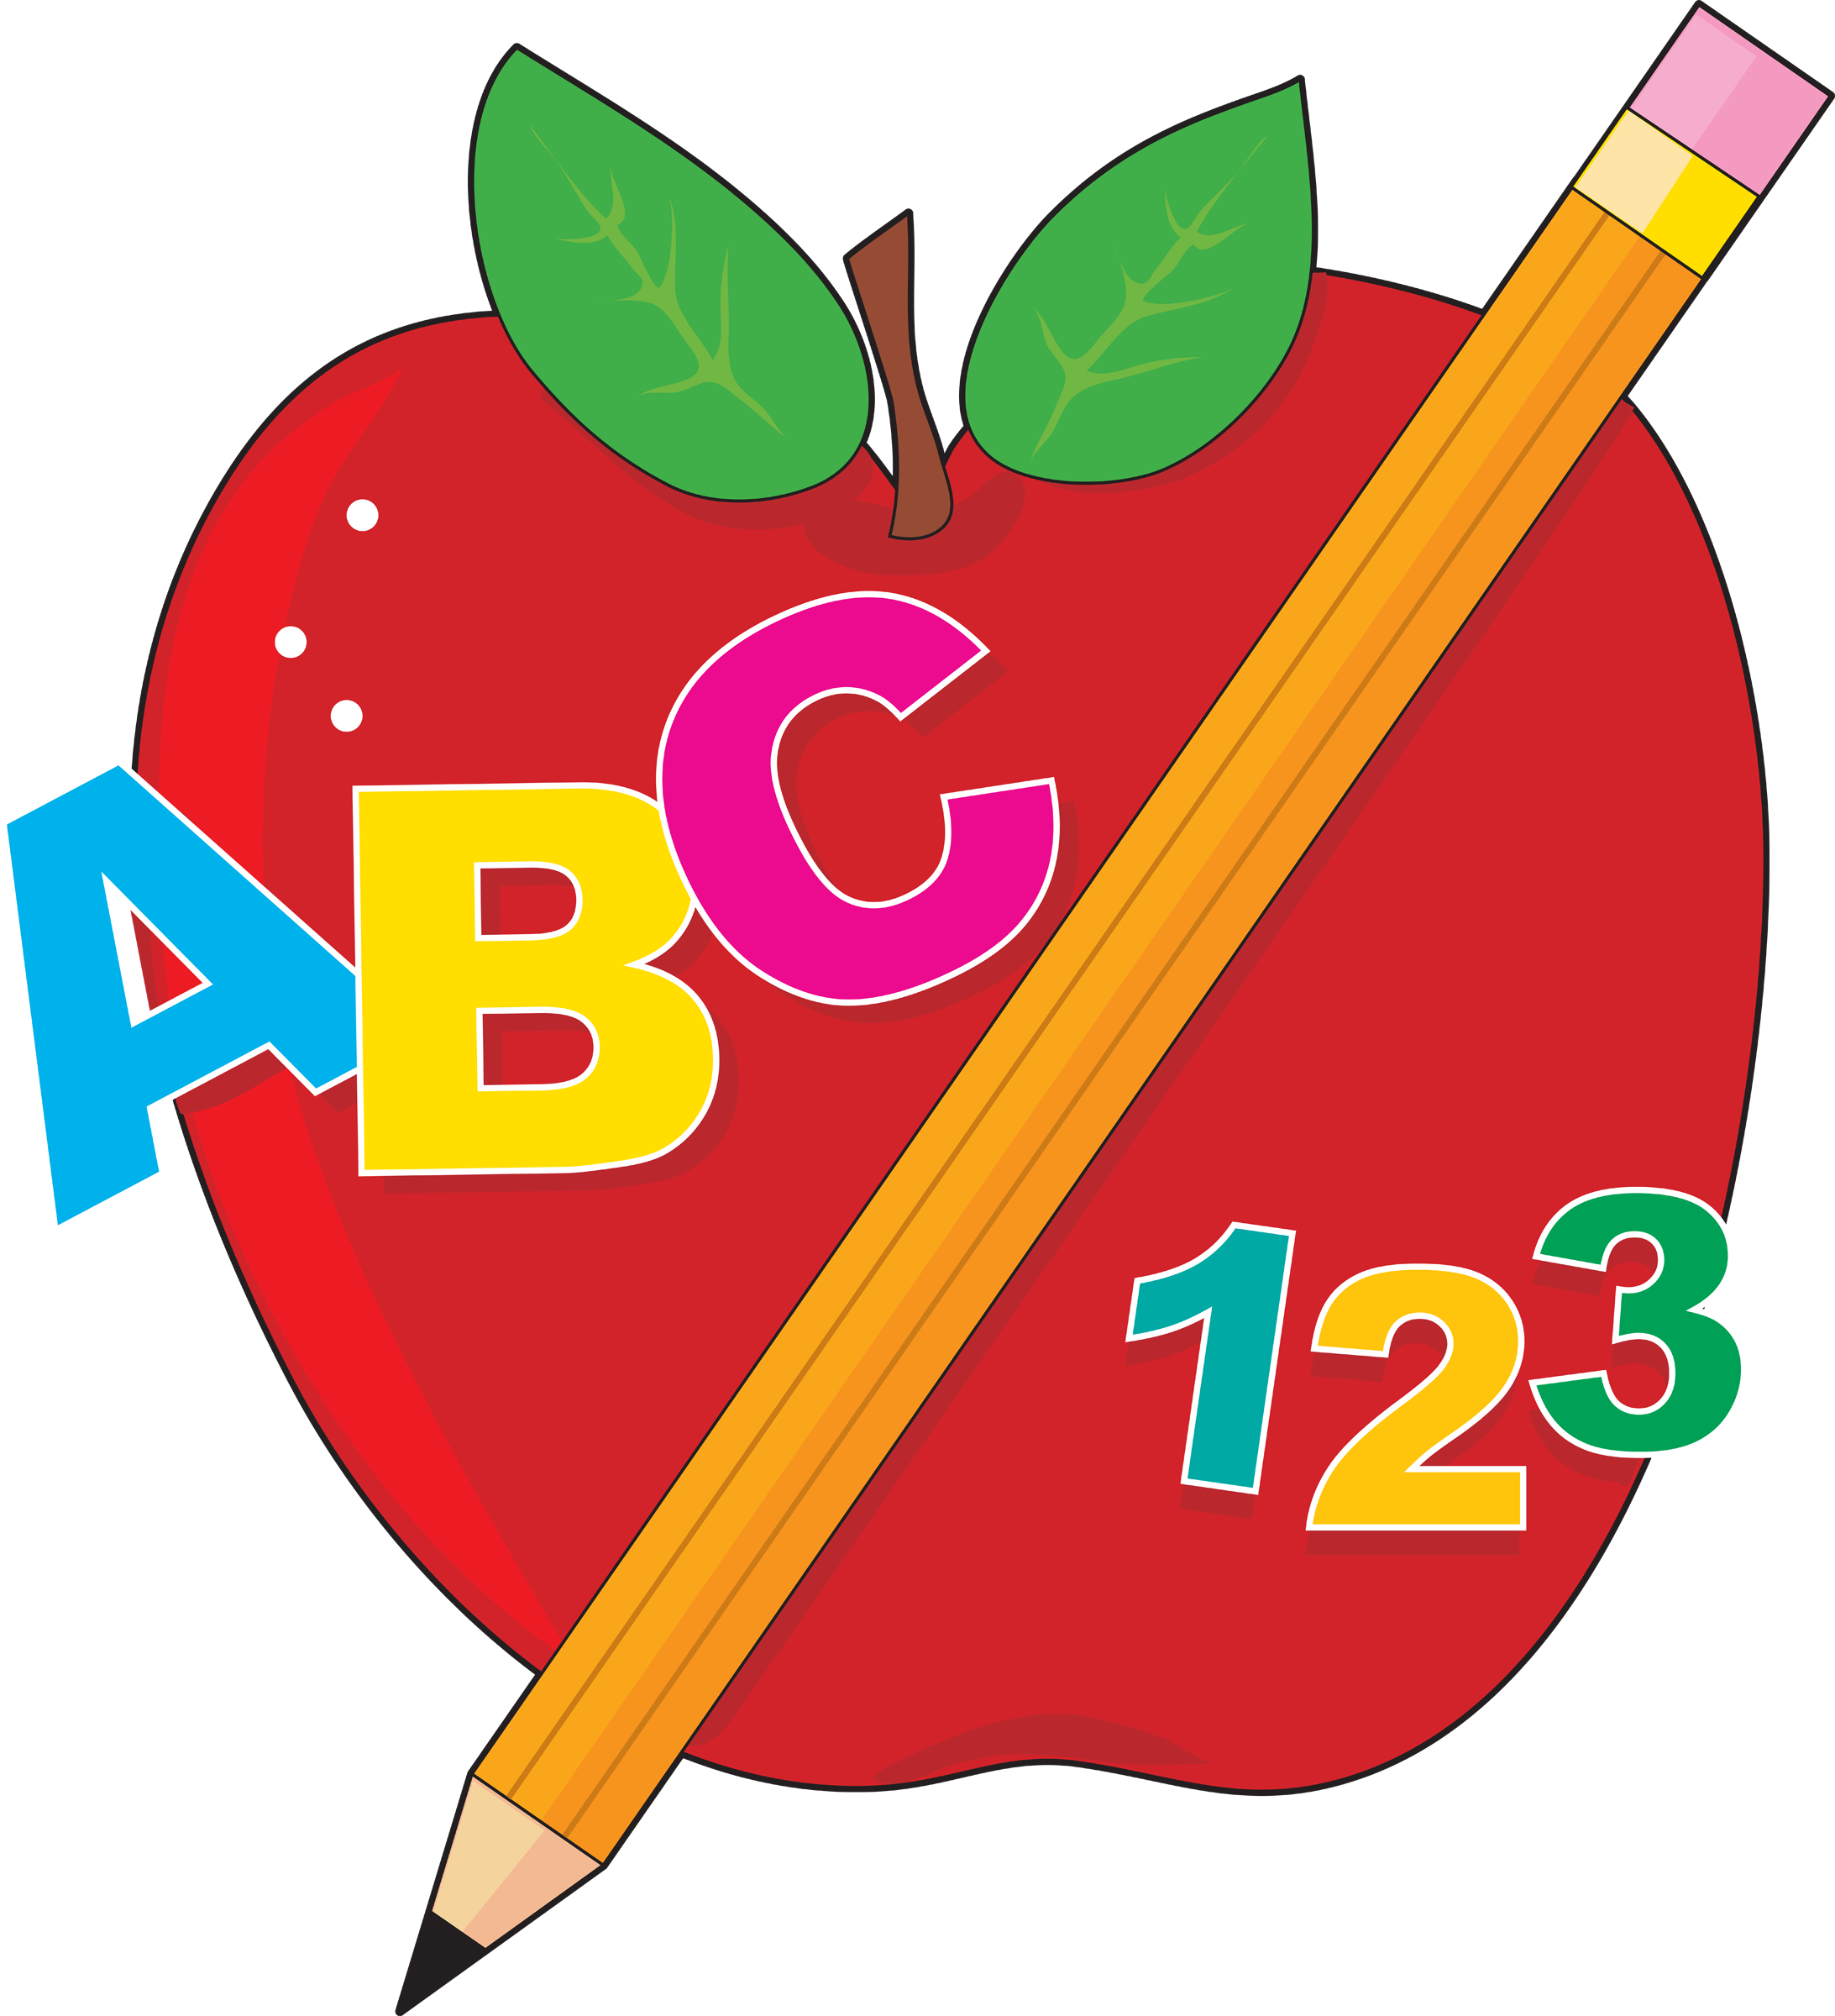 Student clipart pre k, Student pre k Transparent FREE for.